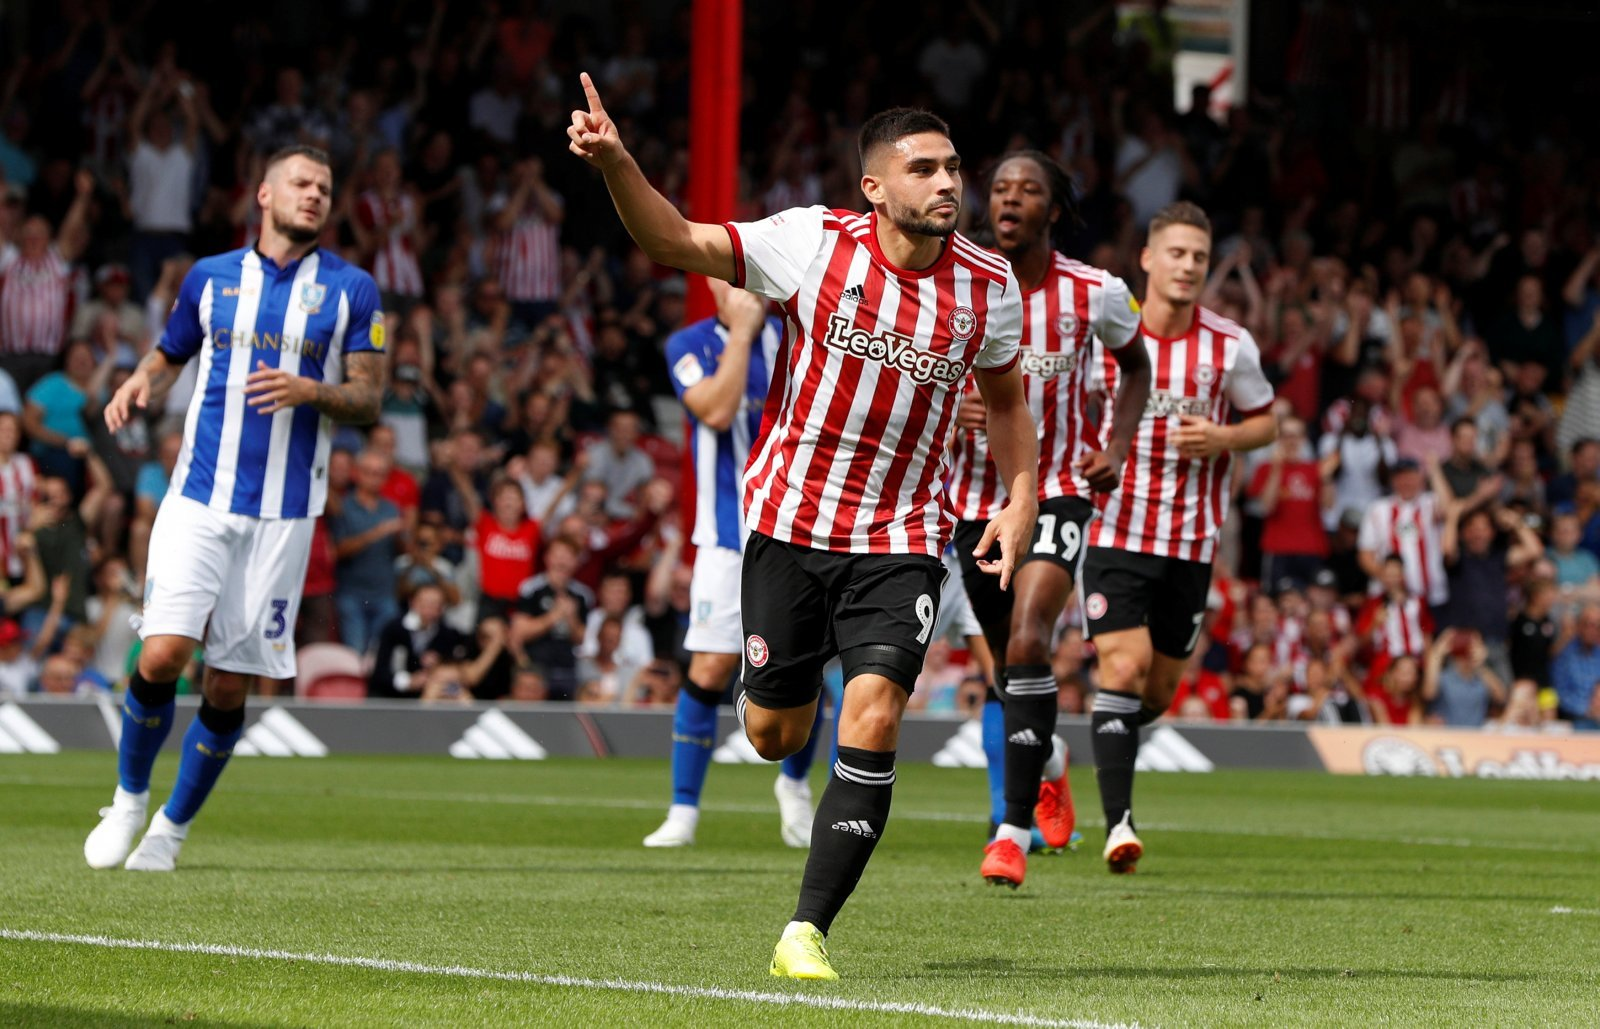 Ralph Hasenhuttl may just keep Southampton up with January raid for Neal Maupay